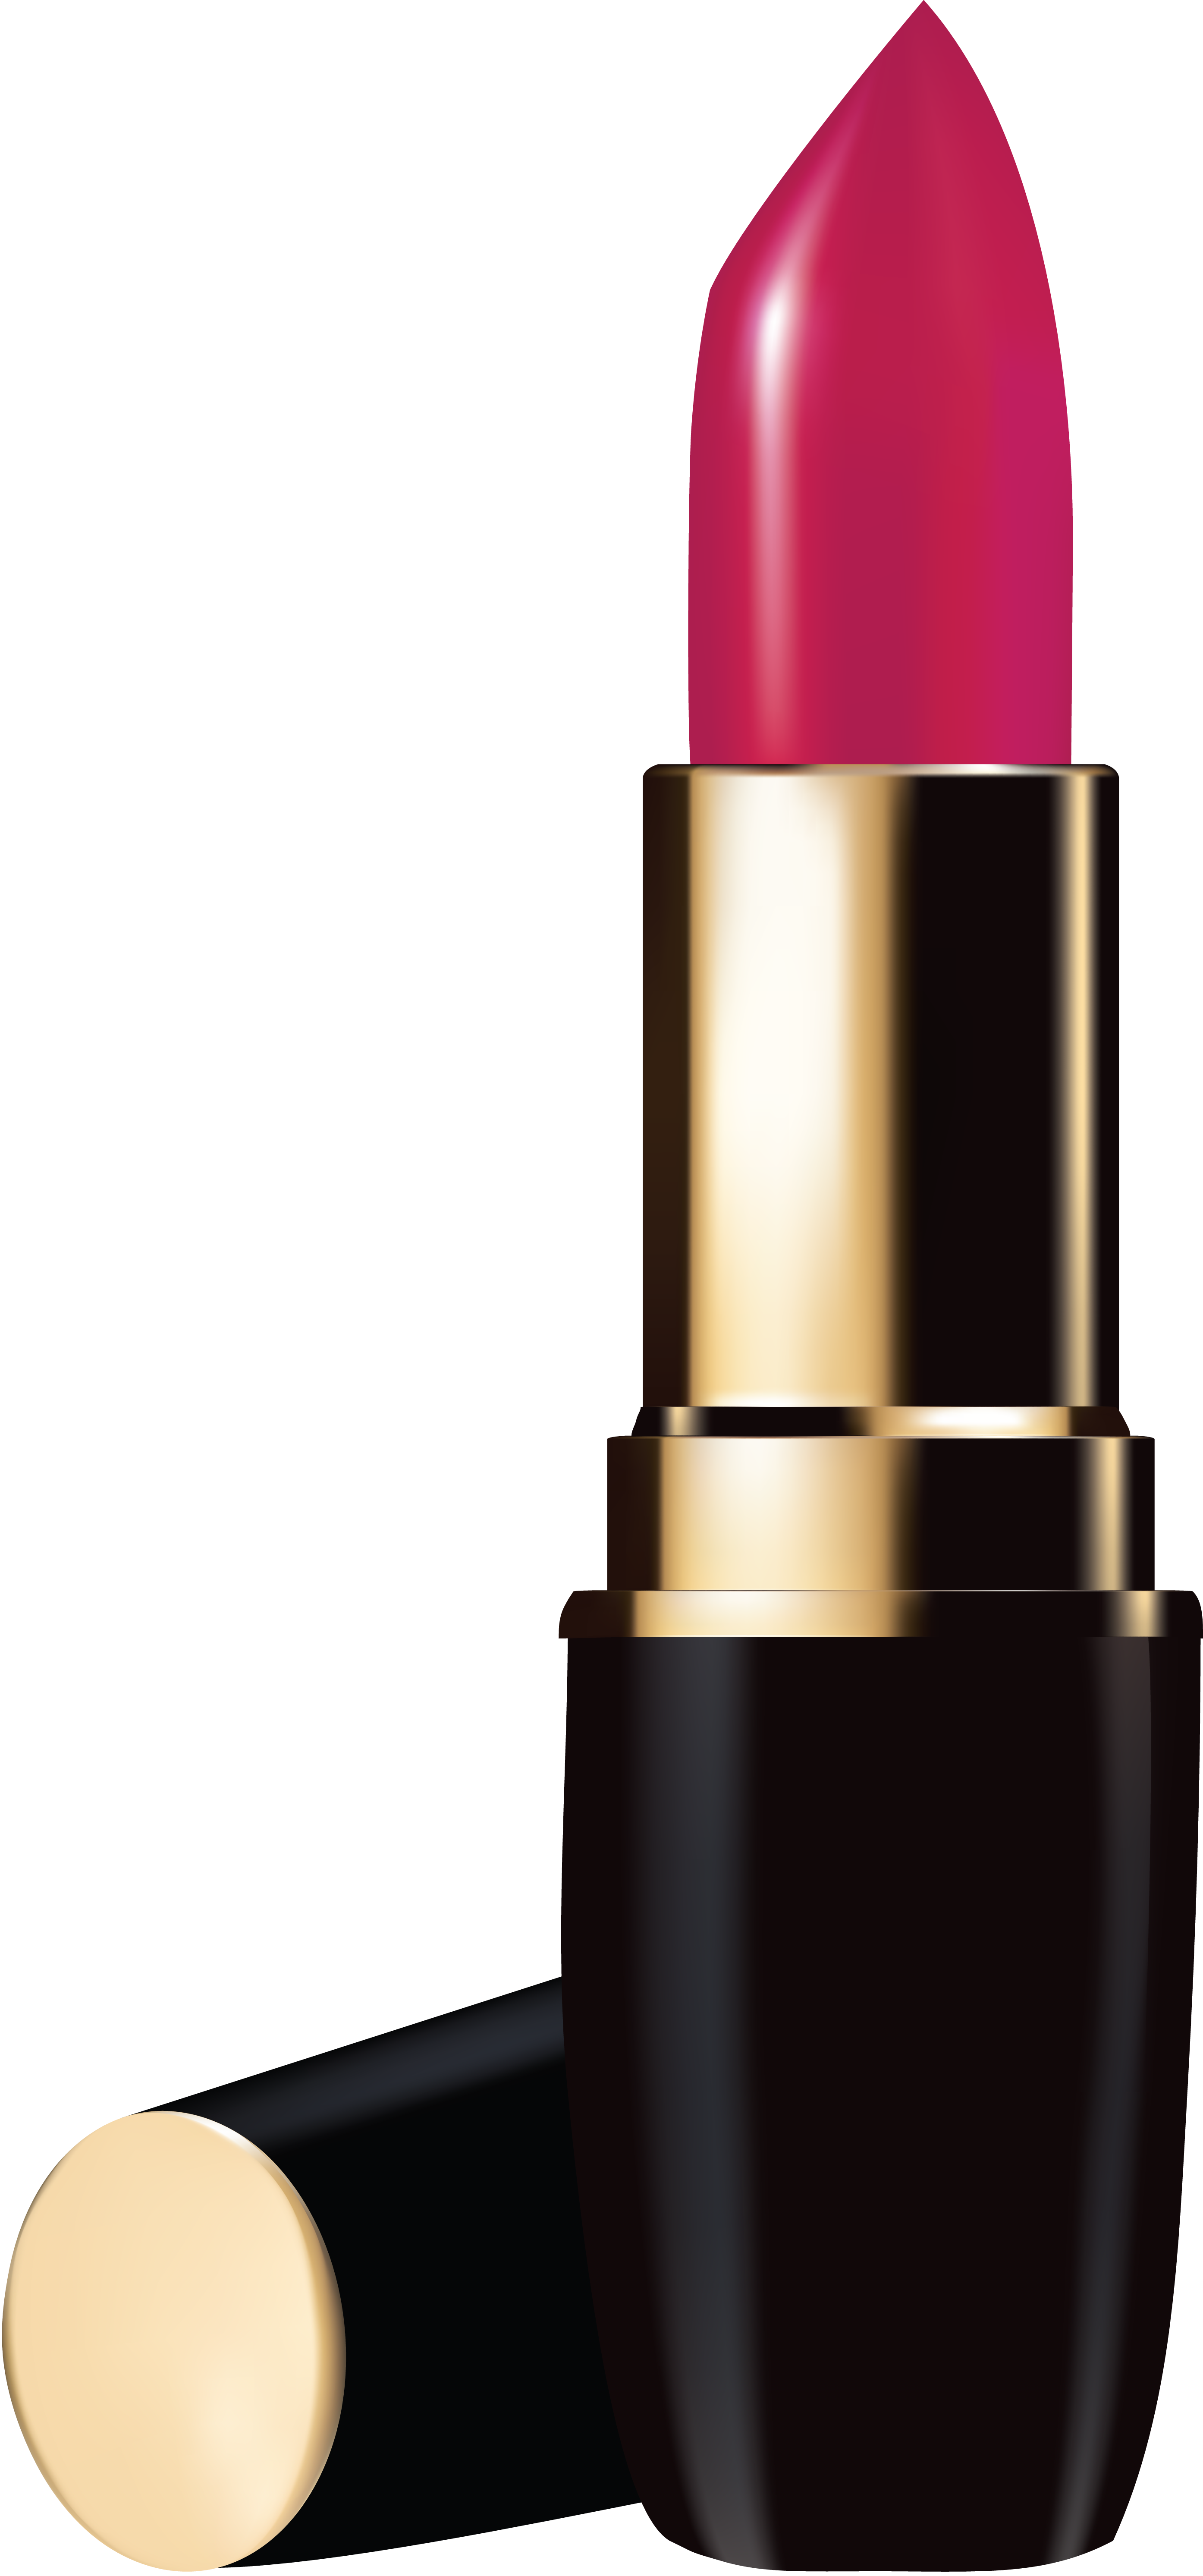 Lipstick can make the face of not only lips, but these 5